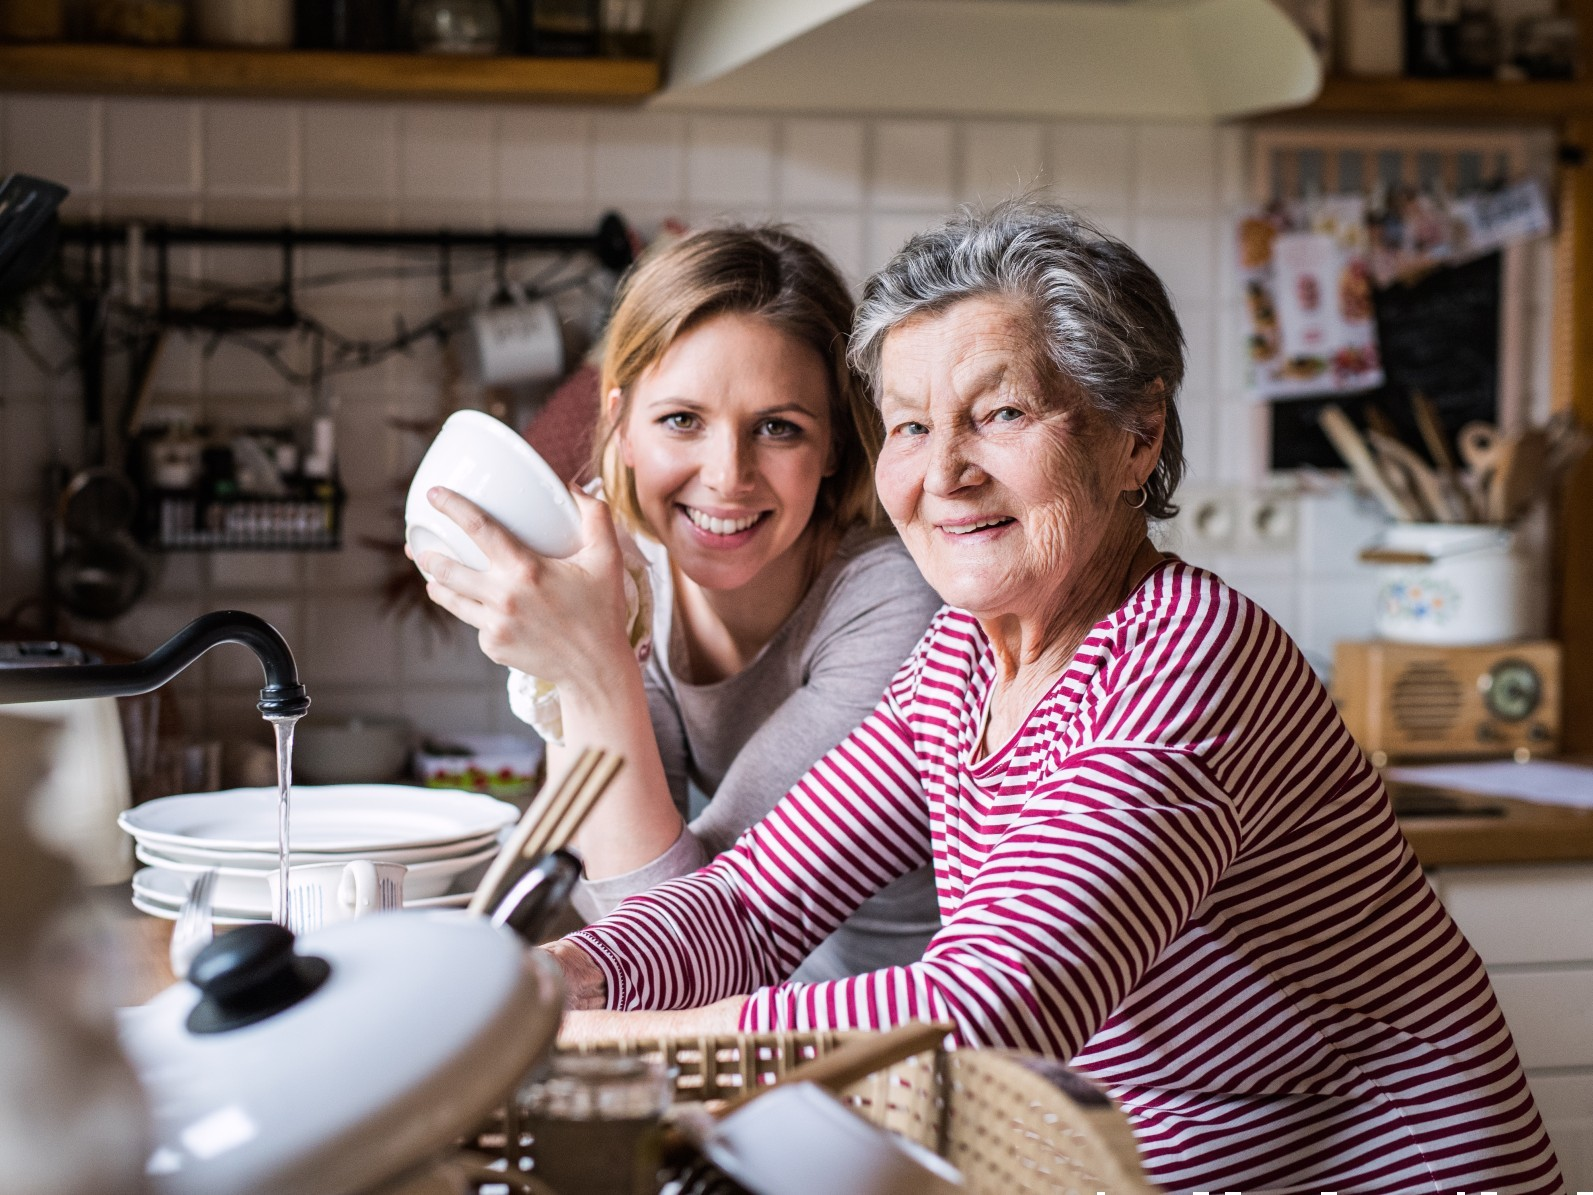 Older woman receiving assistance at home